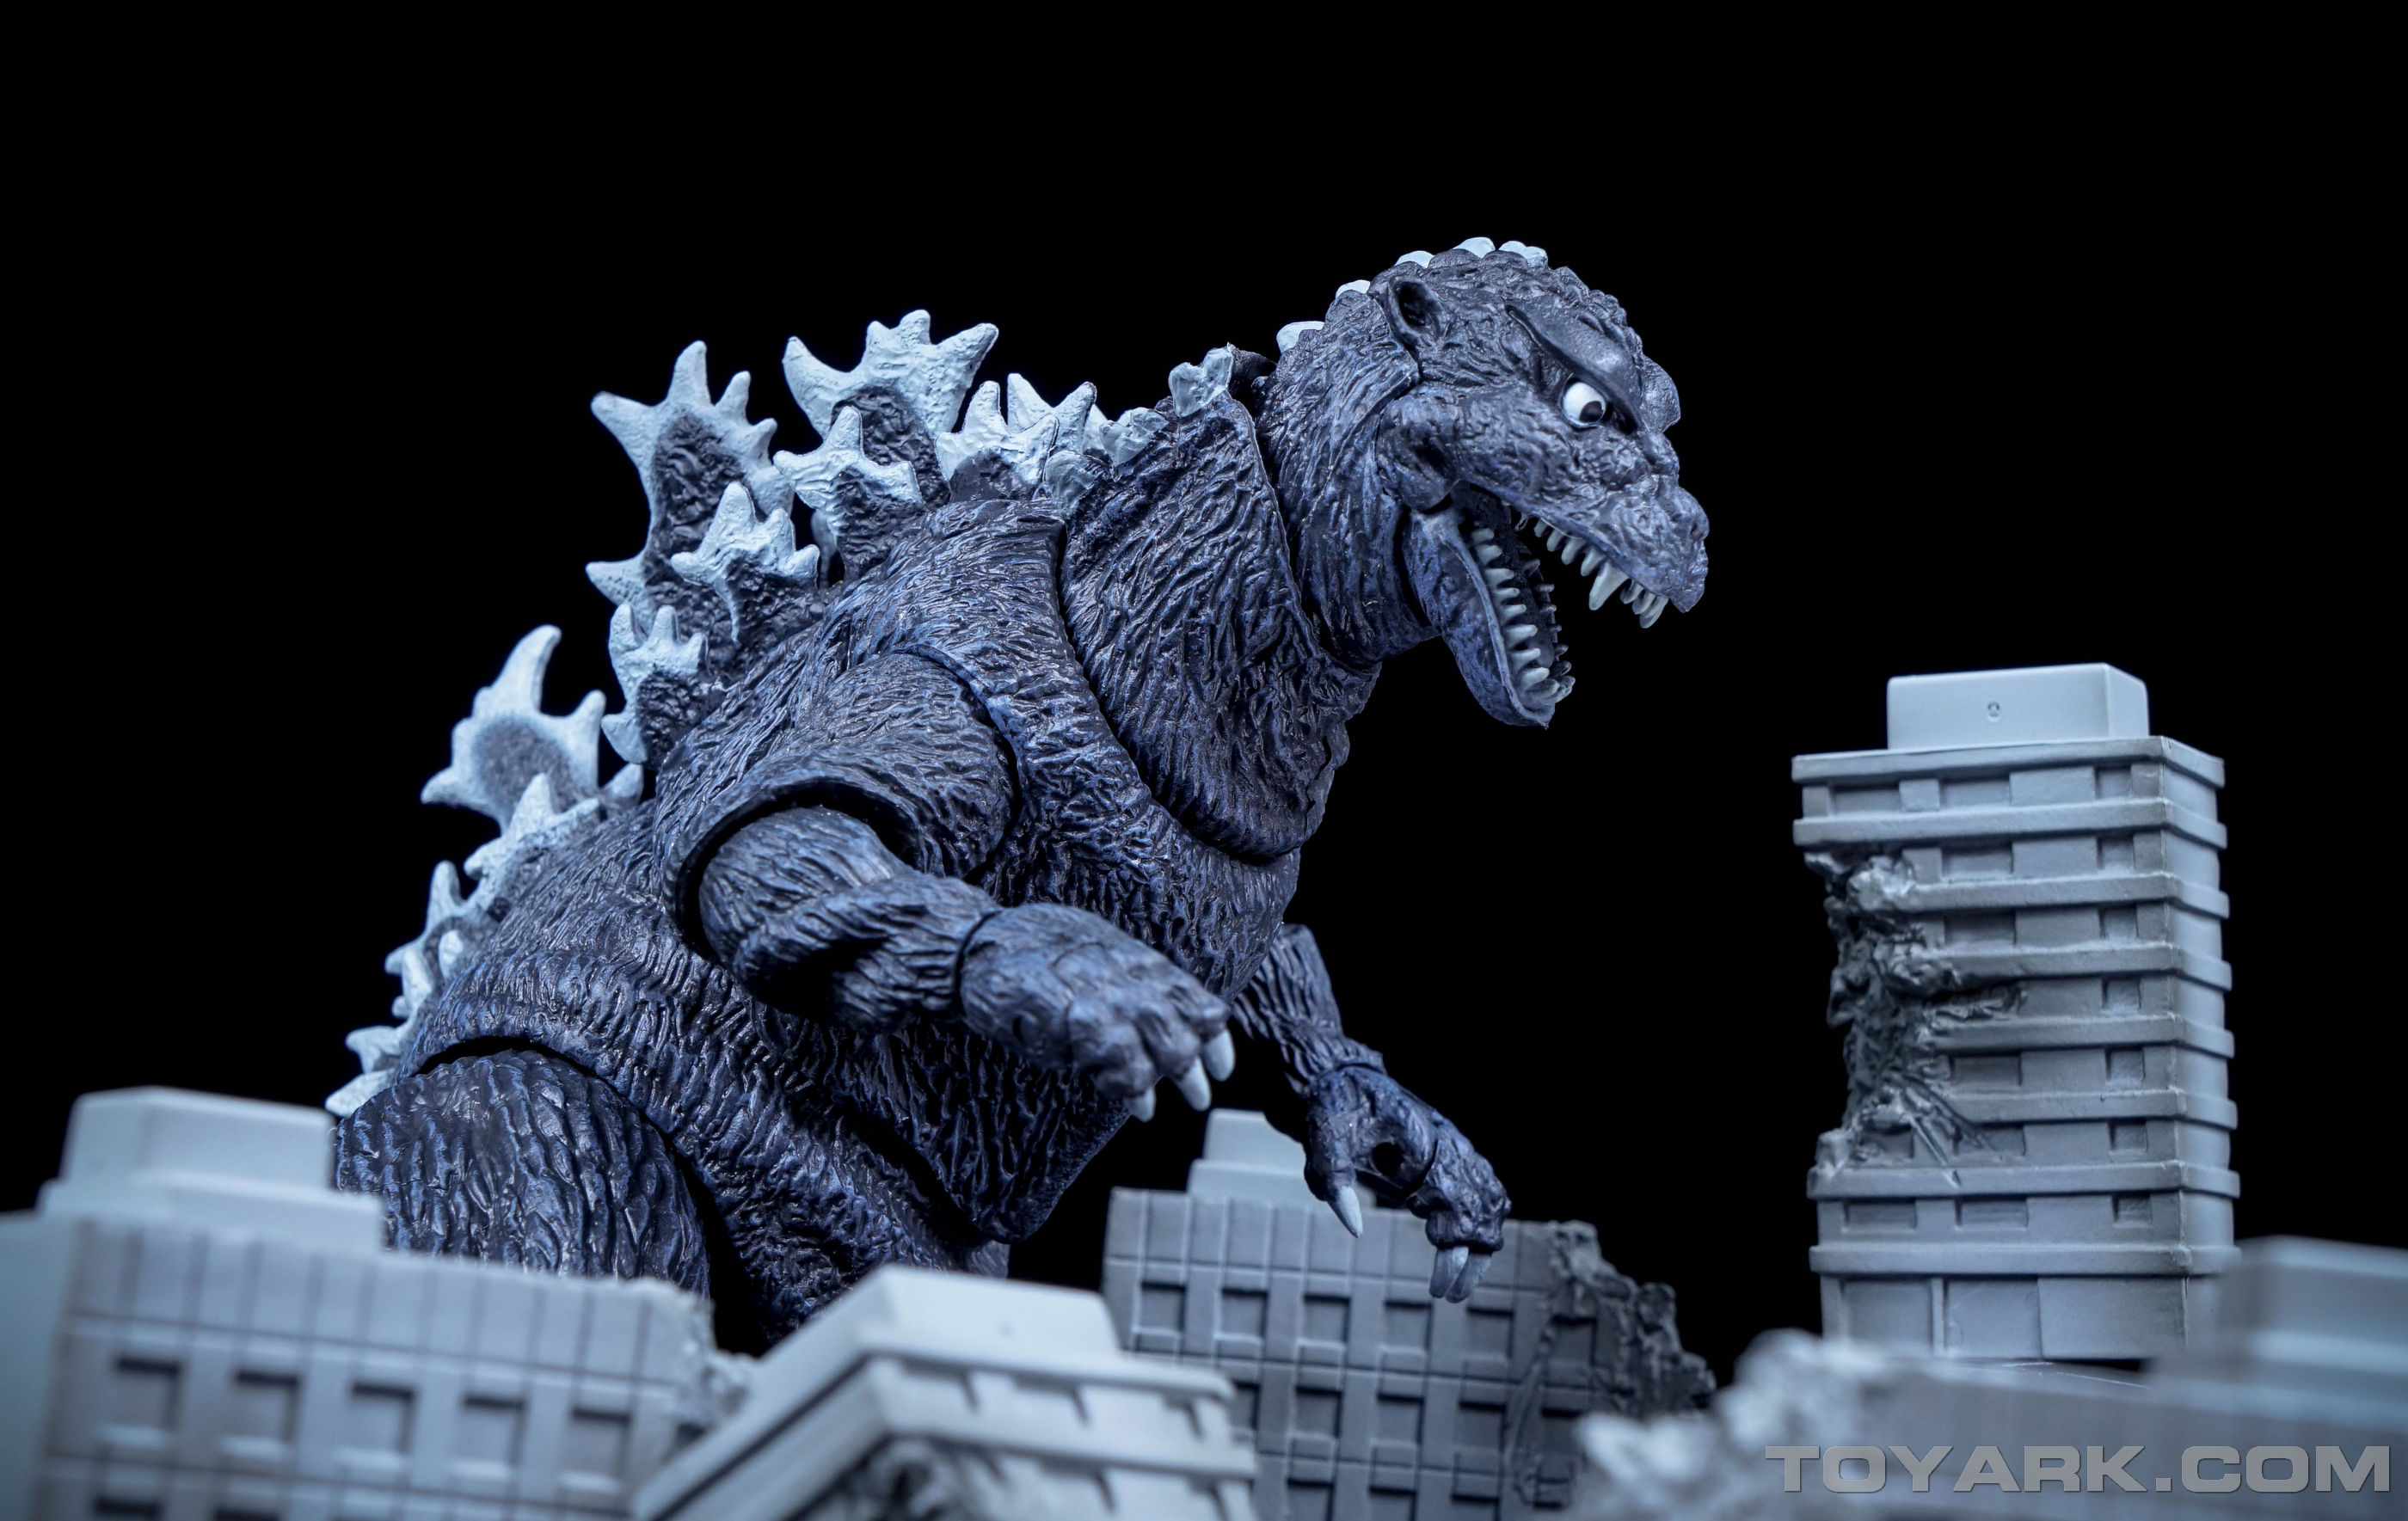 http://news.toyark.com/wp-content/uploads/sites/4/2015/09/NECA-1954-Godzilla-040.jpg